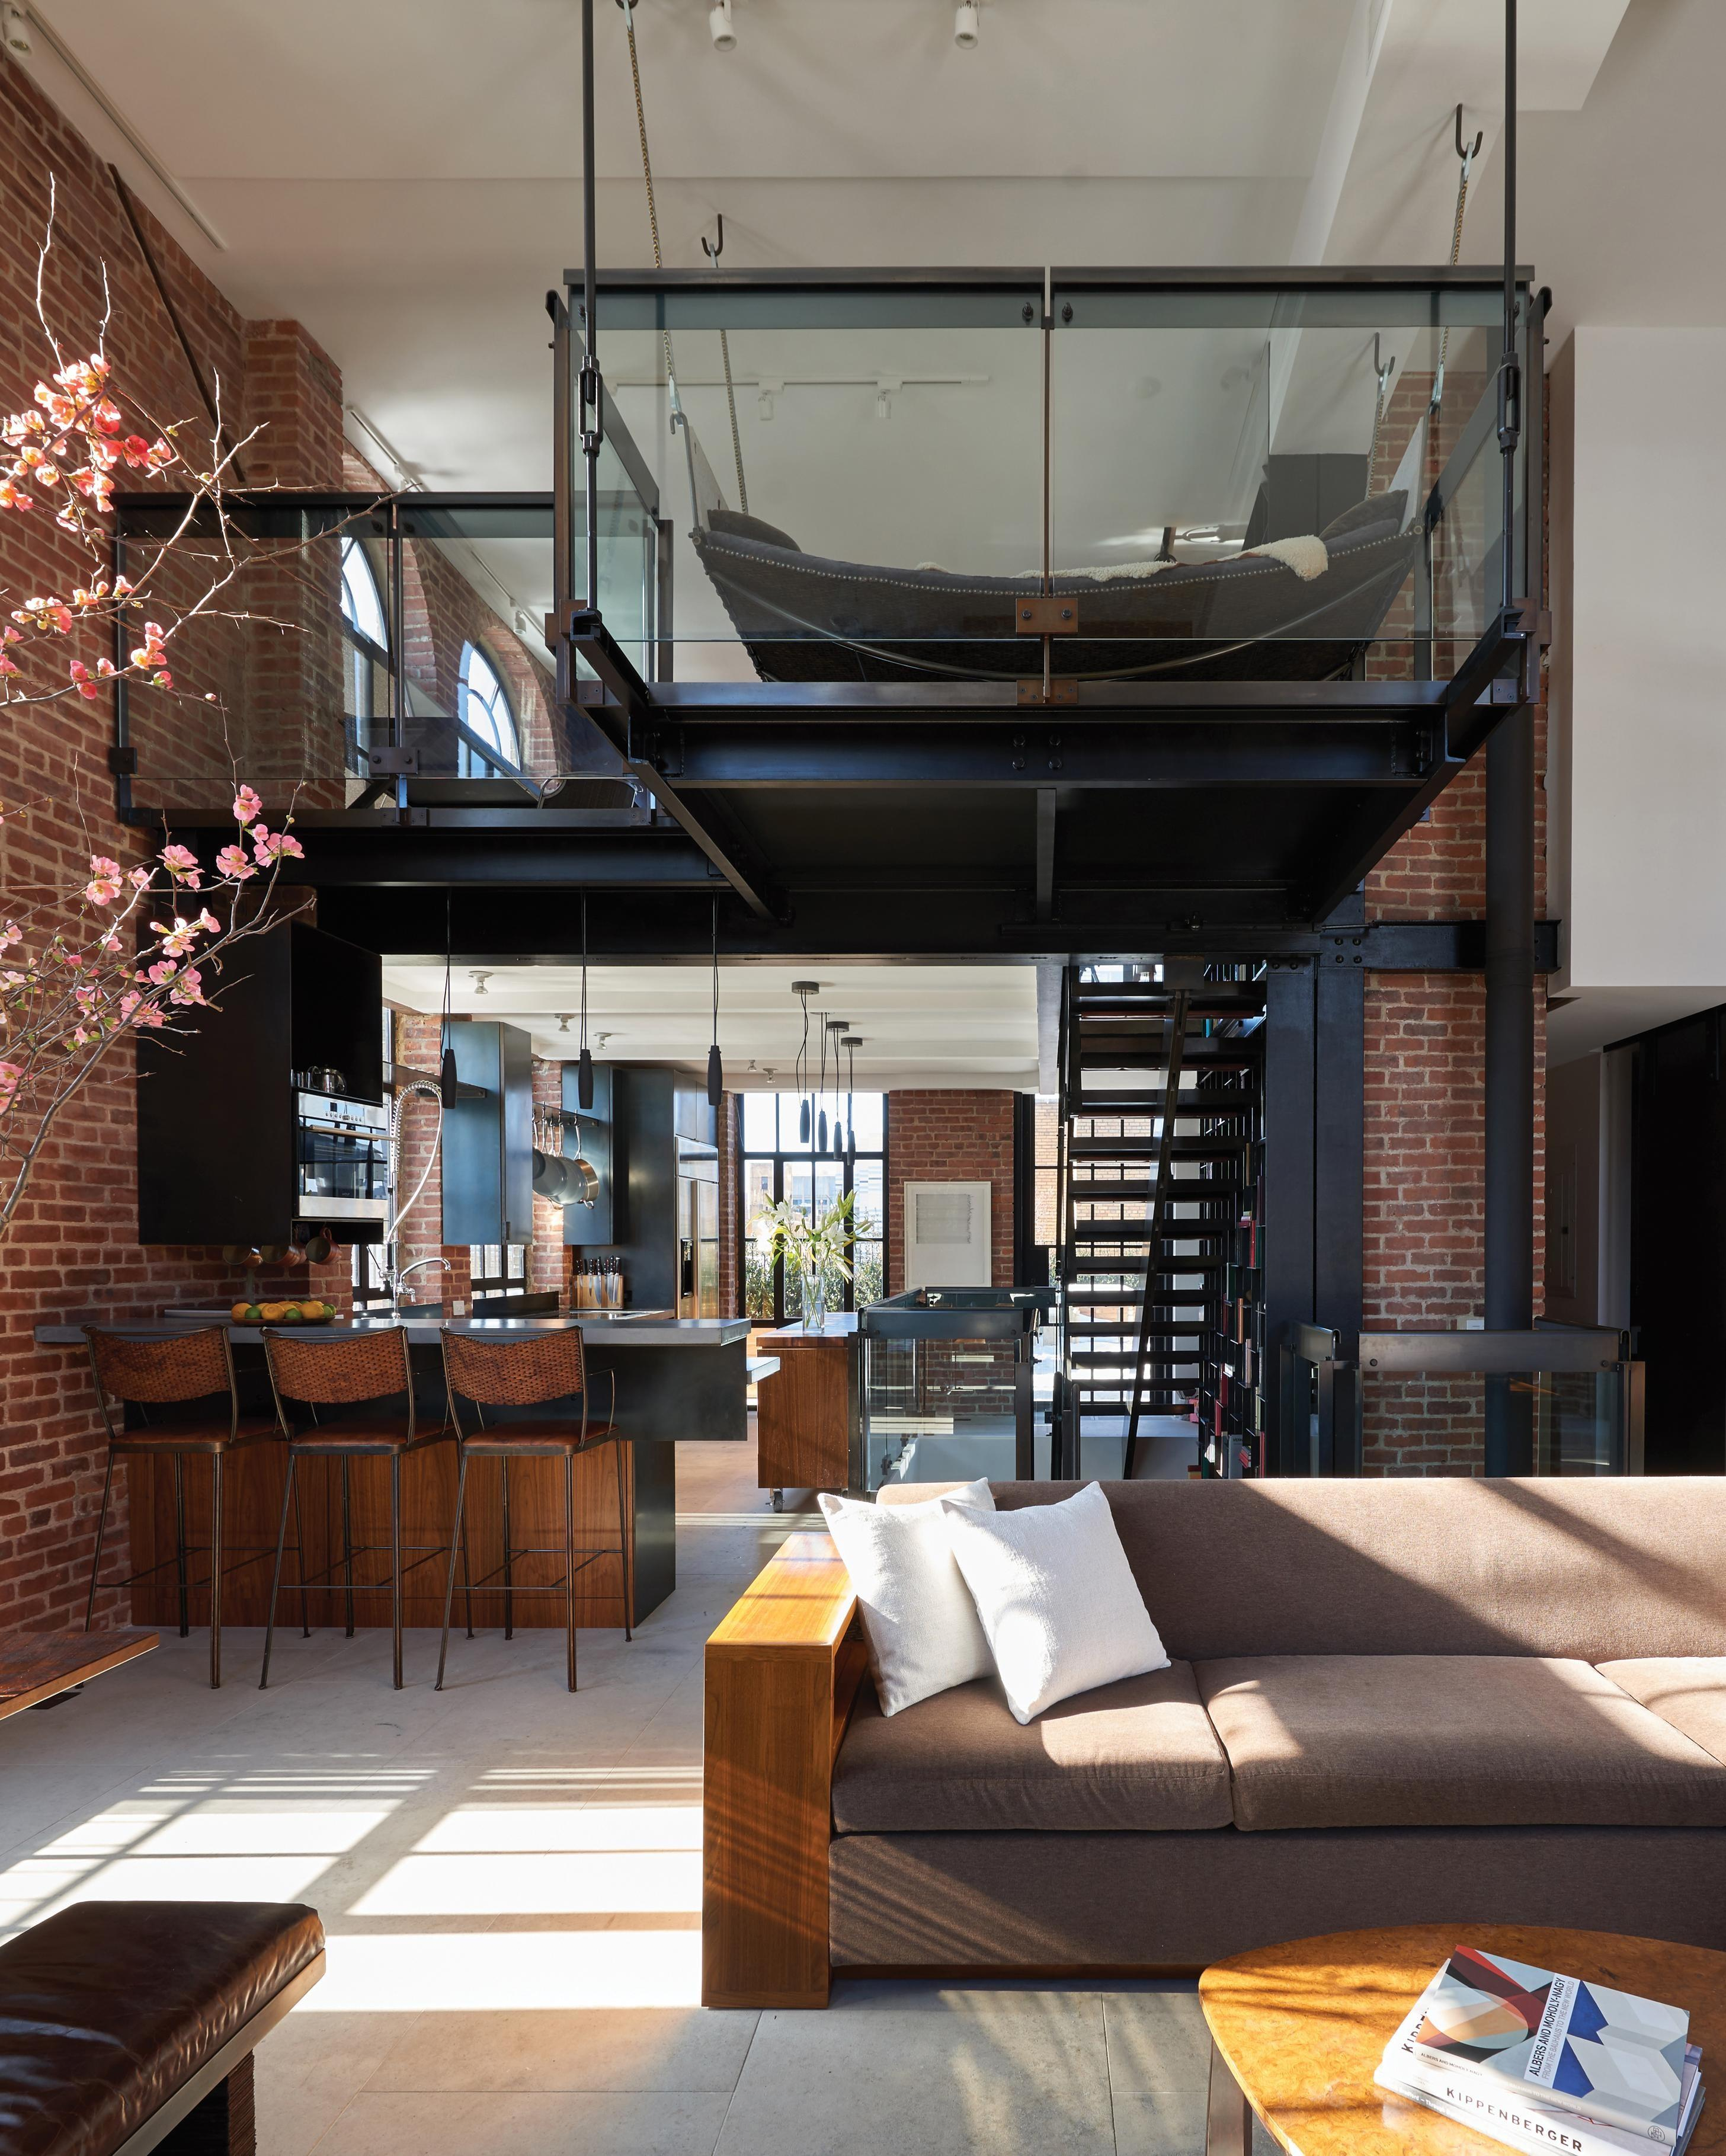 Penthouse Loft Built Converted Water Tower Nyc